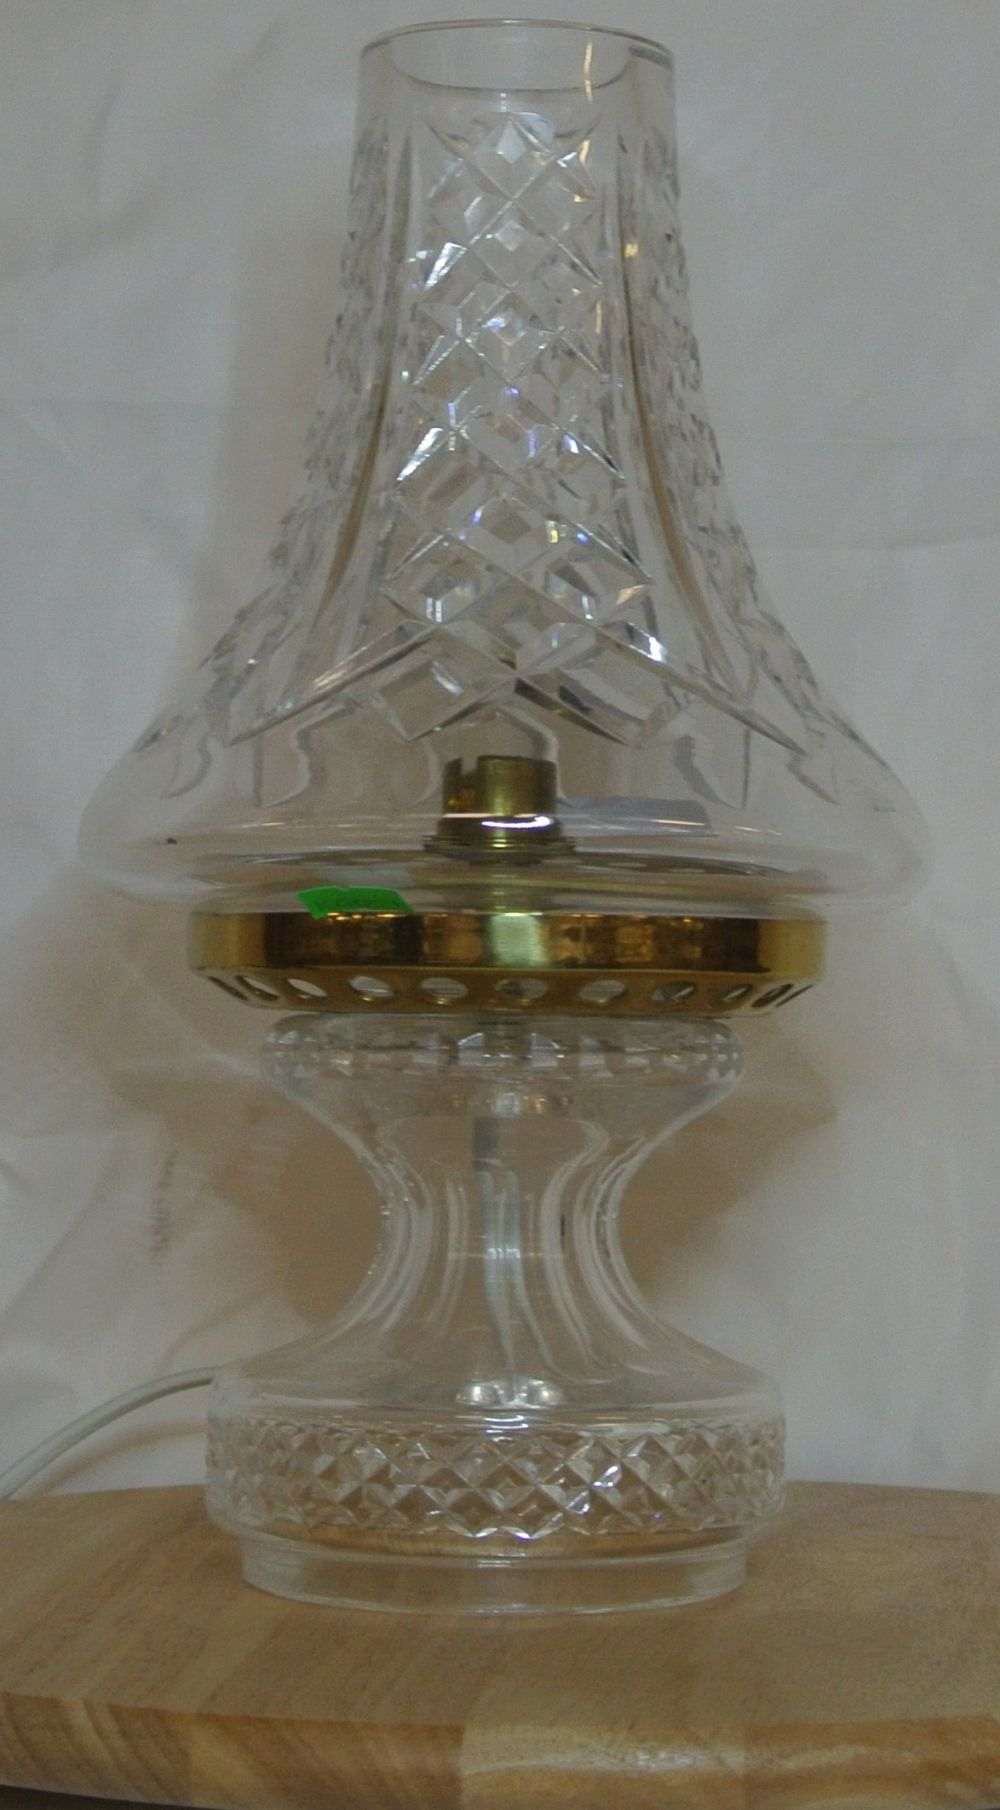 Lot 13: A Waterford Crystal Hurricane table lamp.